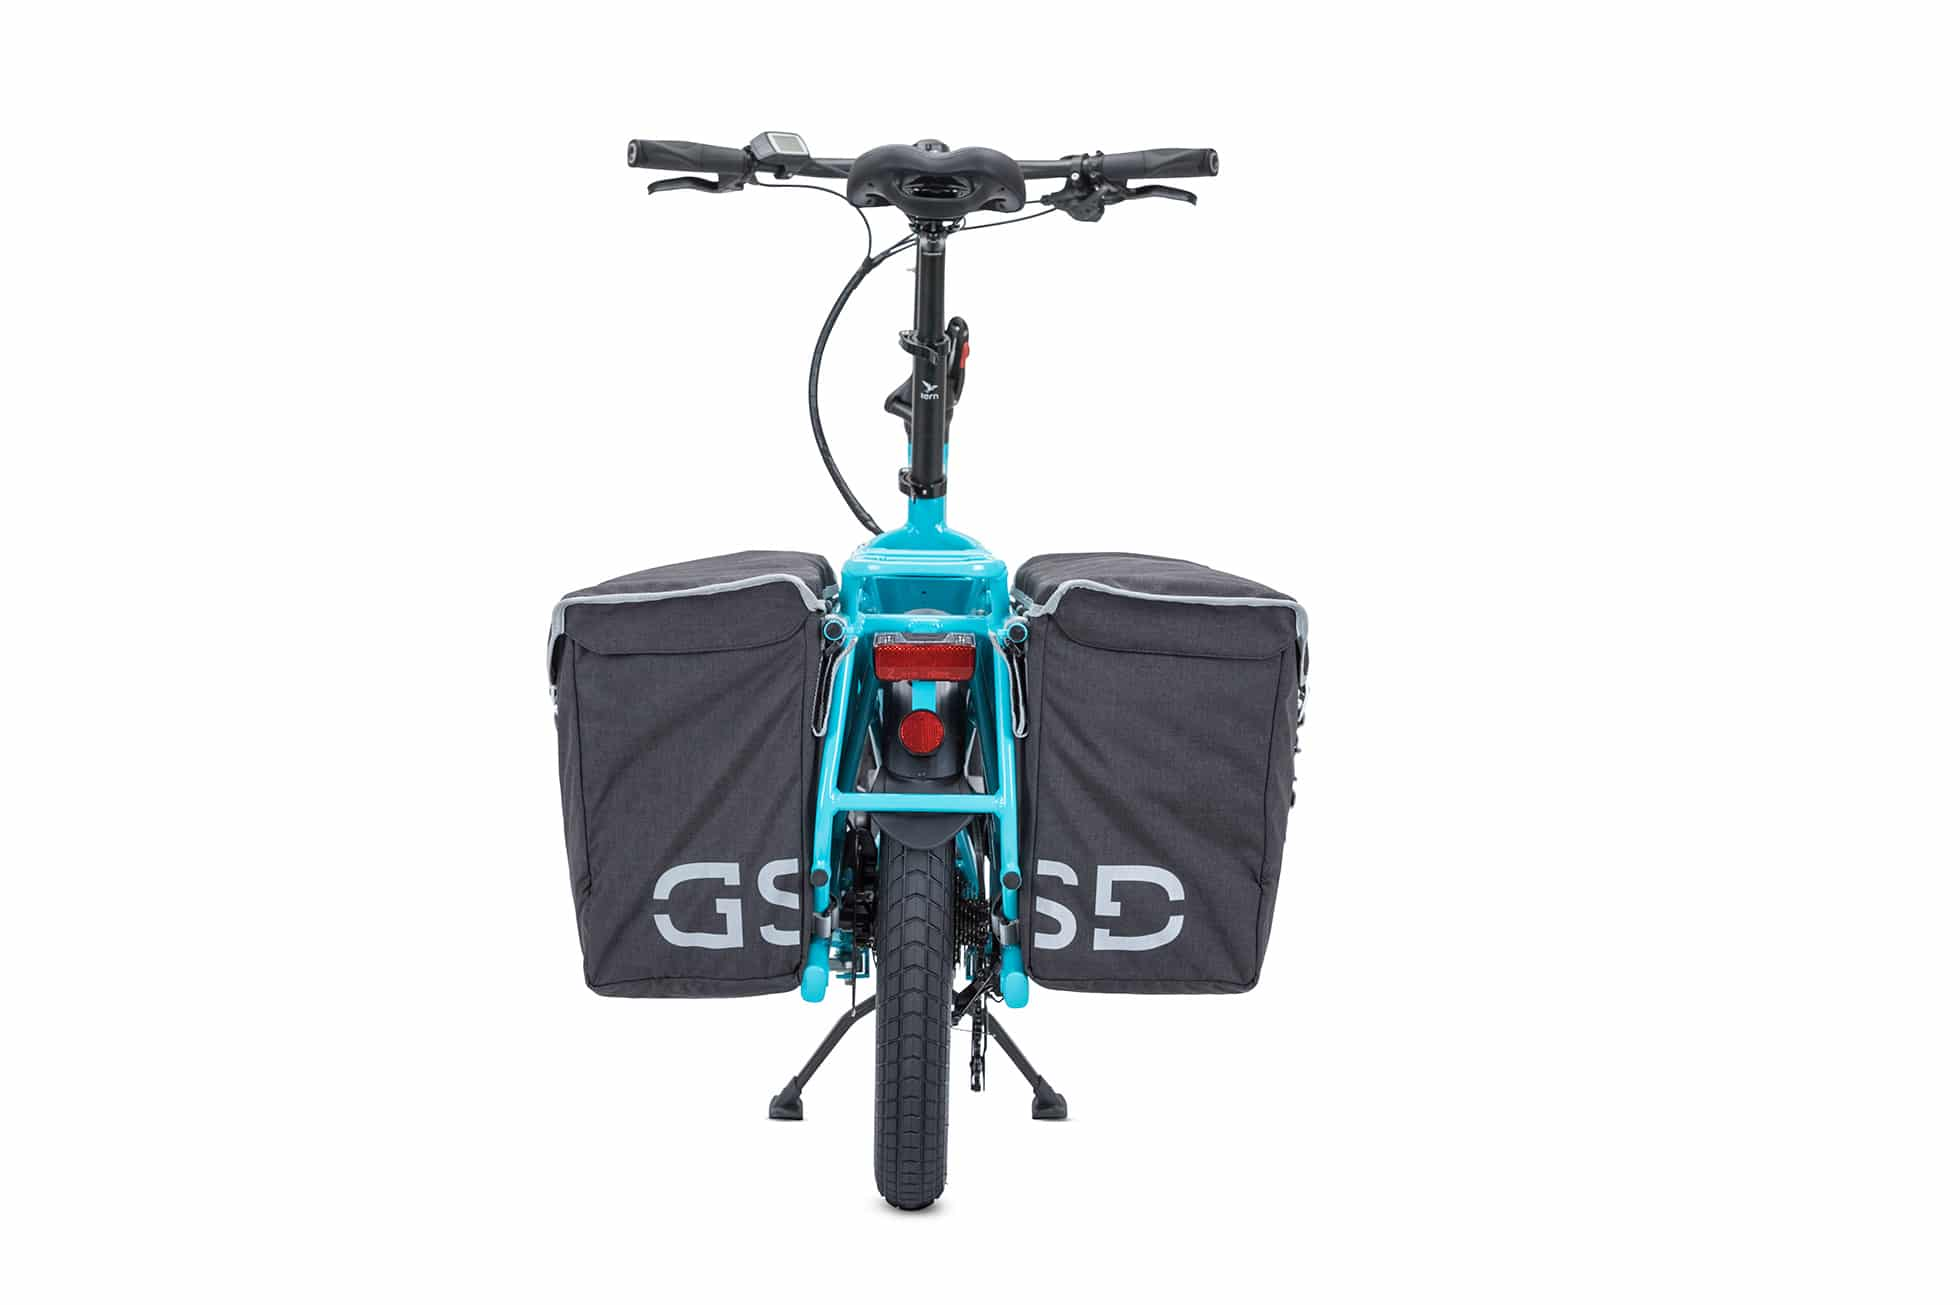 gsds10-g1-detail-beetleblue-rear-bag